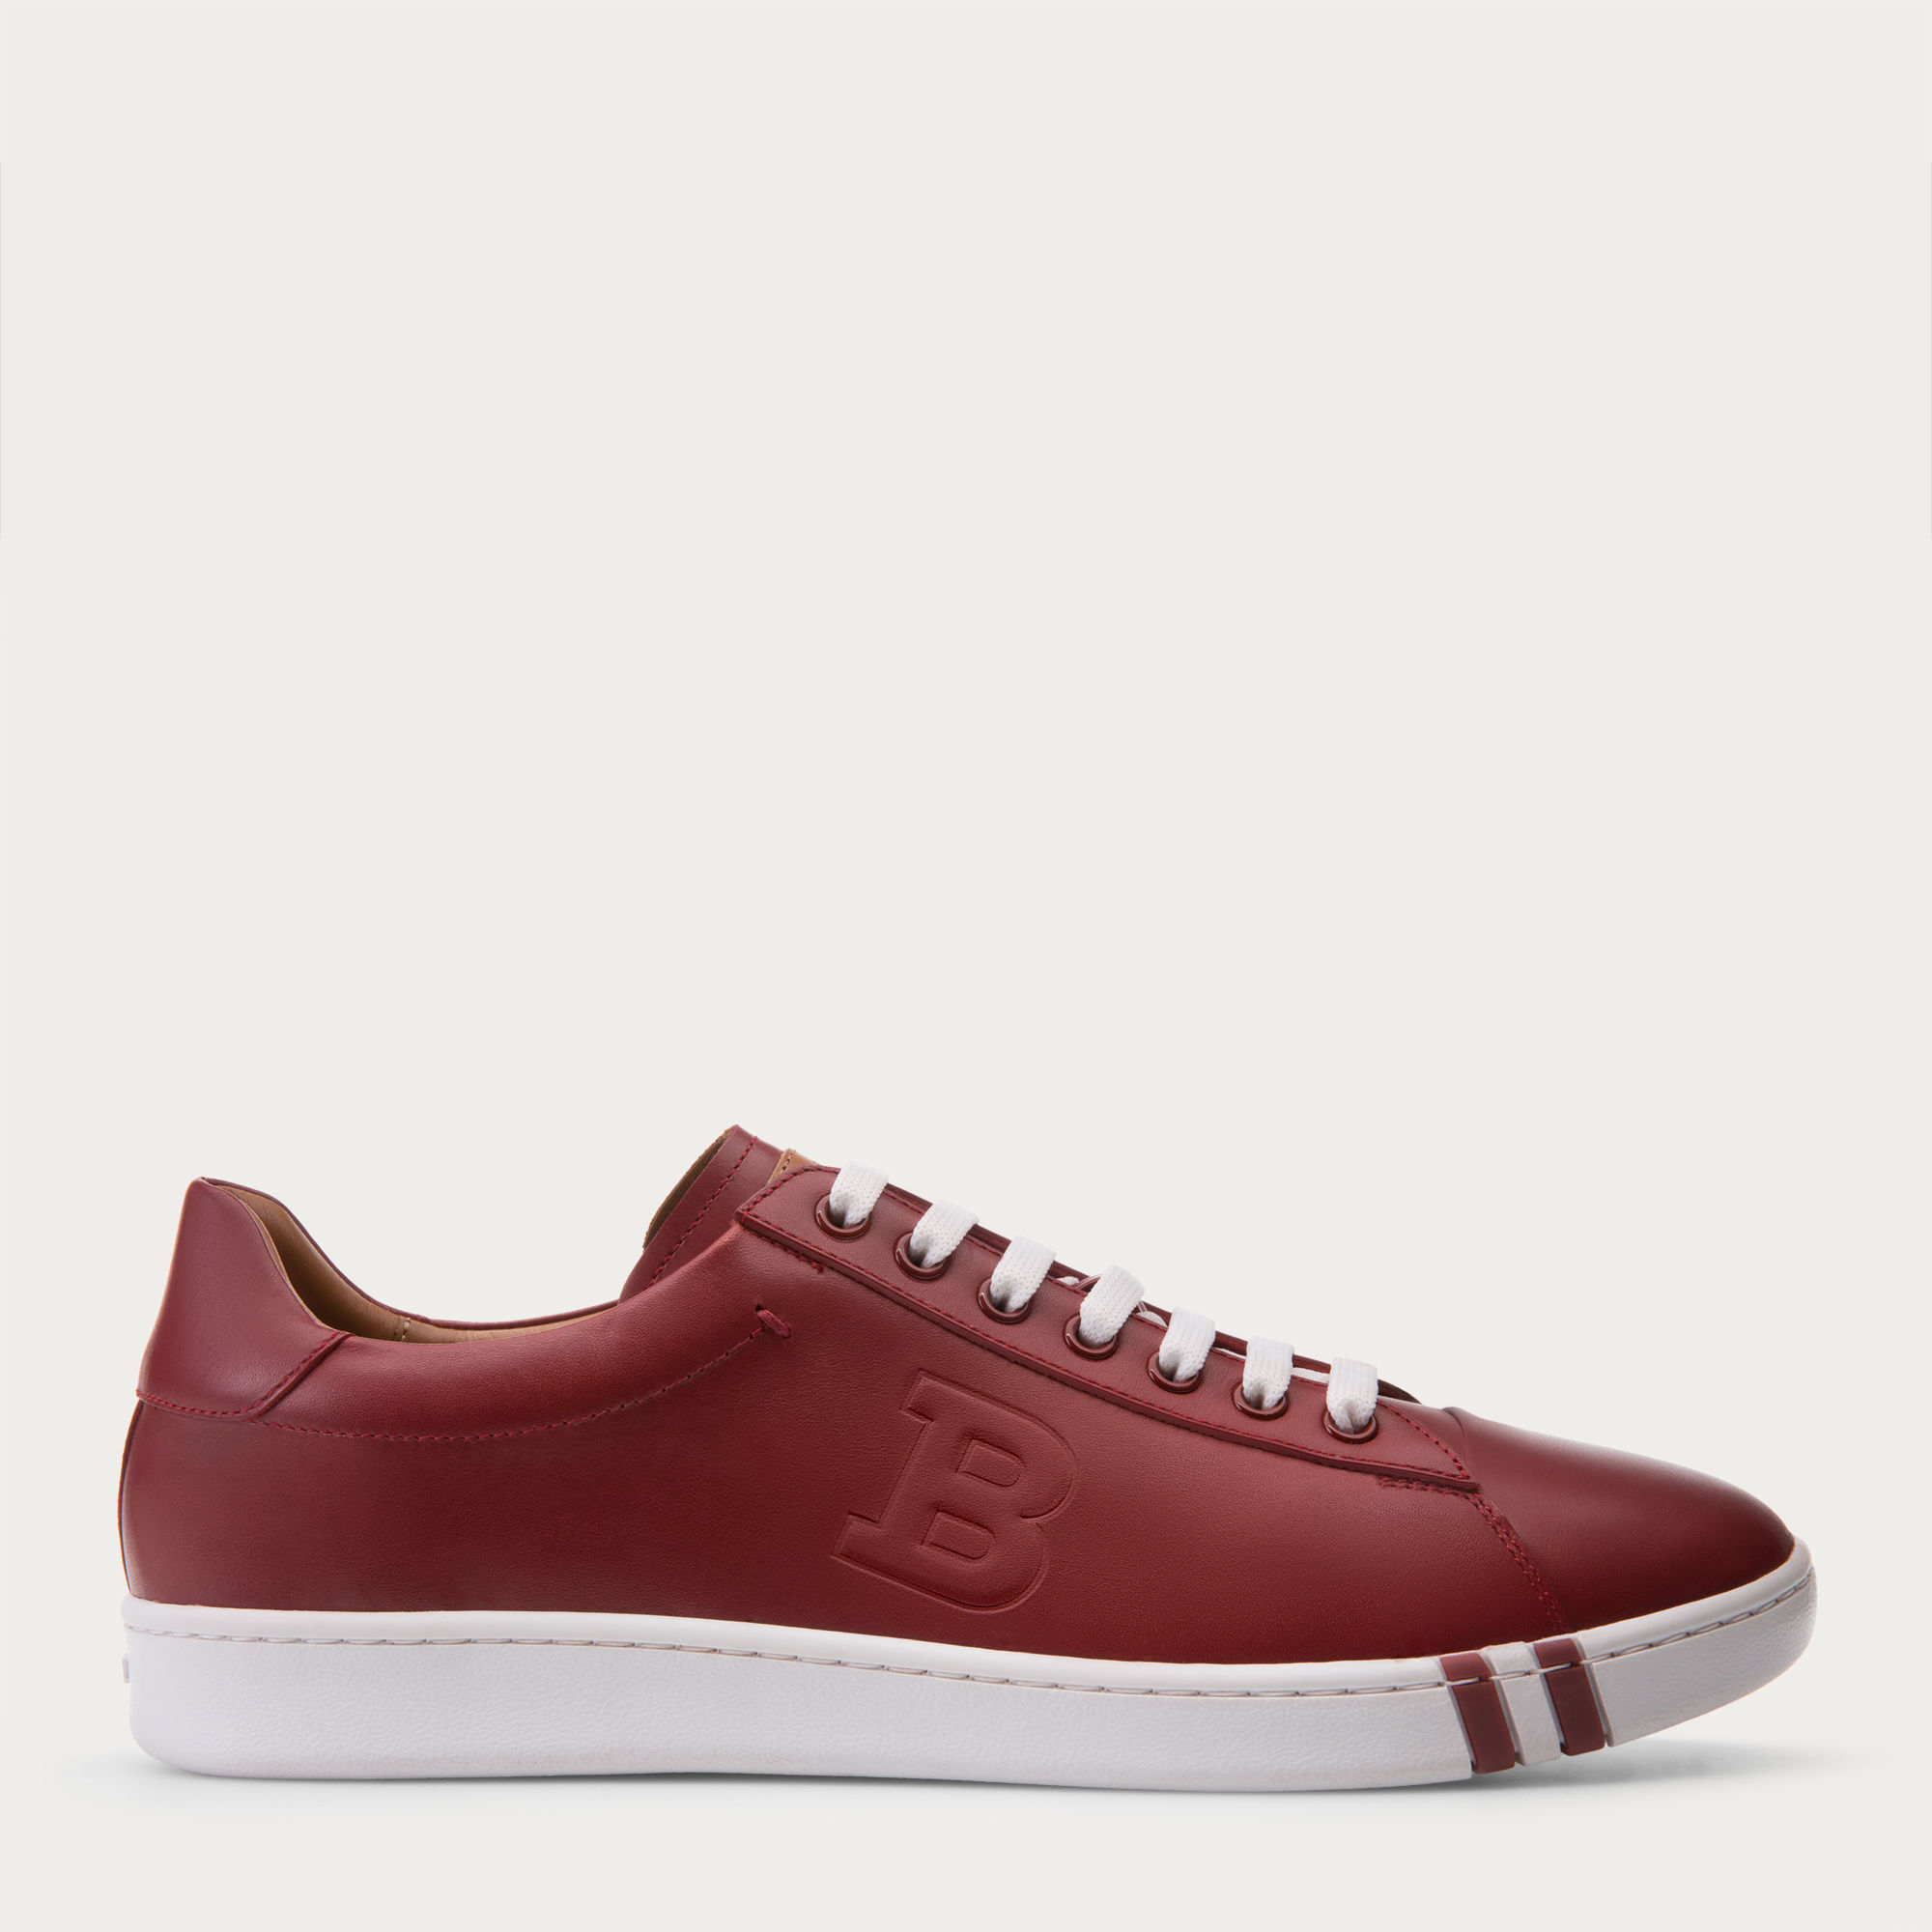 d839960cfa38 Lyst - Bally Asher Men s Leather Low-top Trainer In Red in Pink